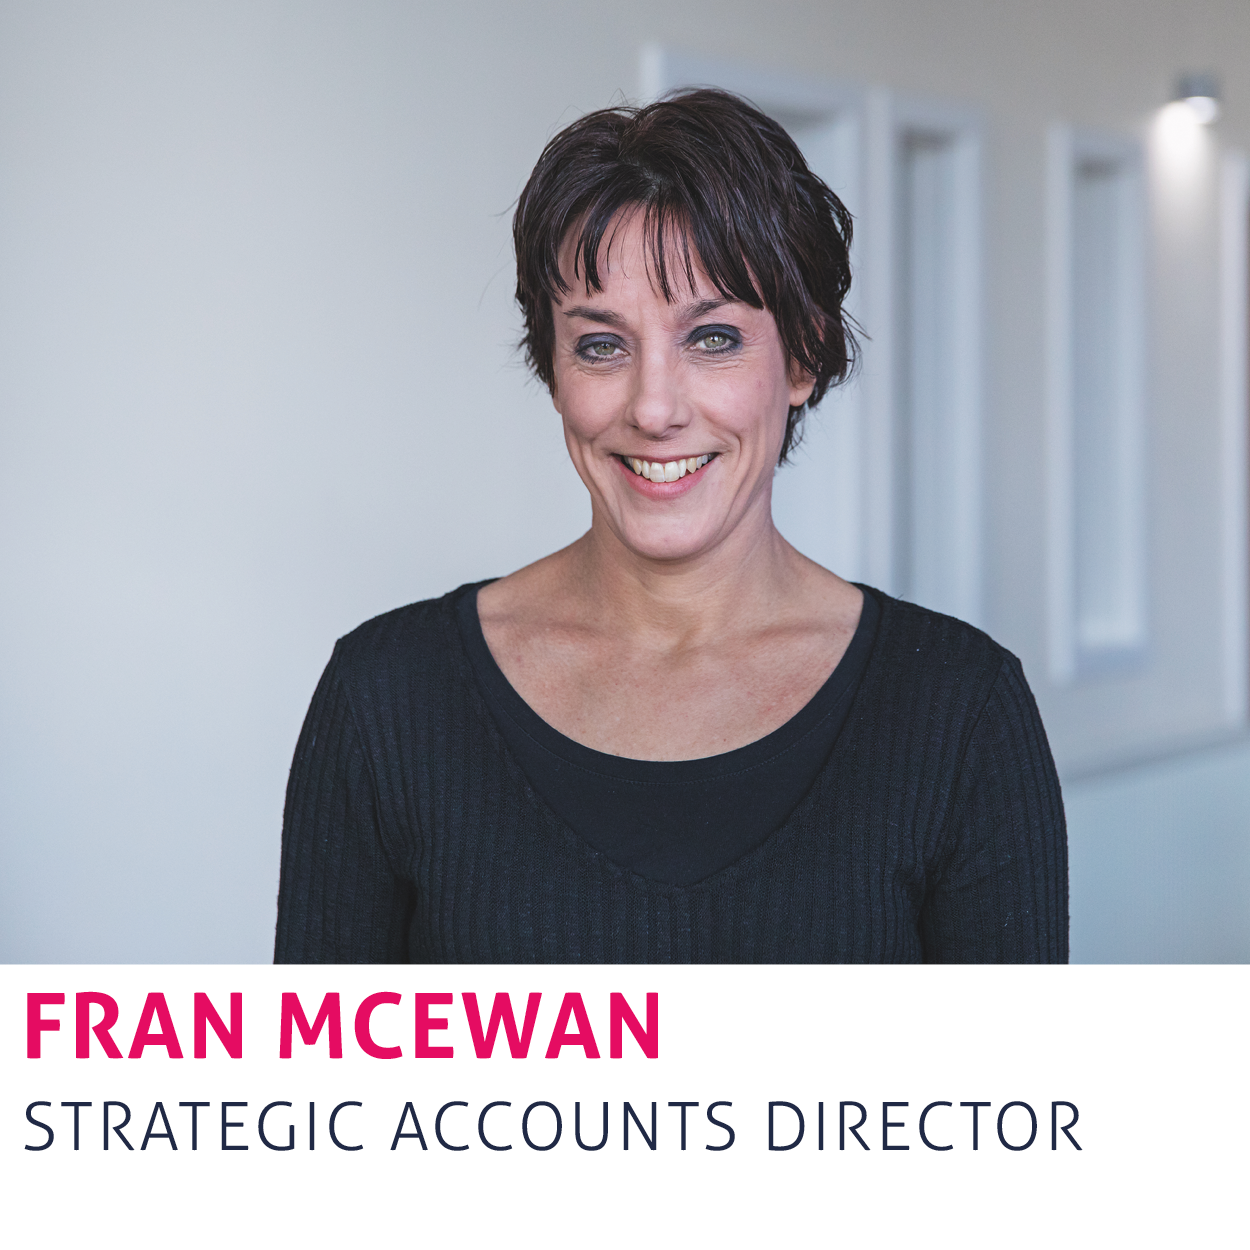 Copy of Fran McEwan - Strategic Accounts Director